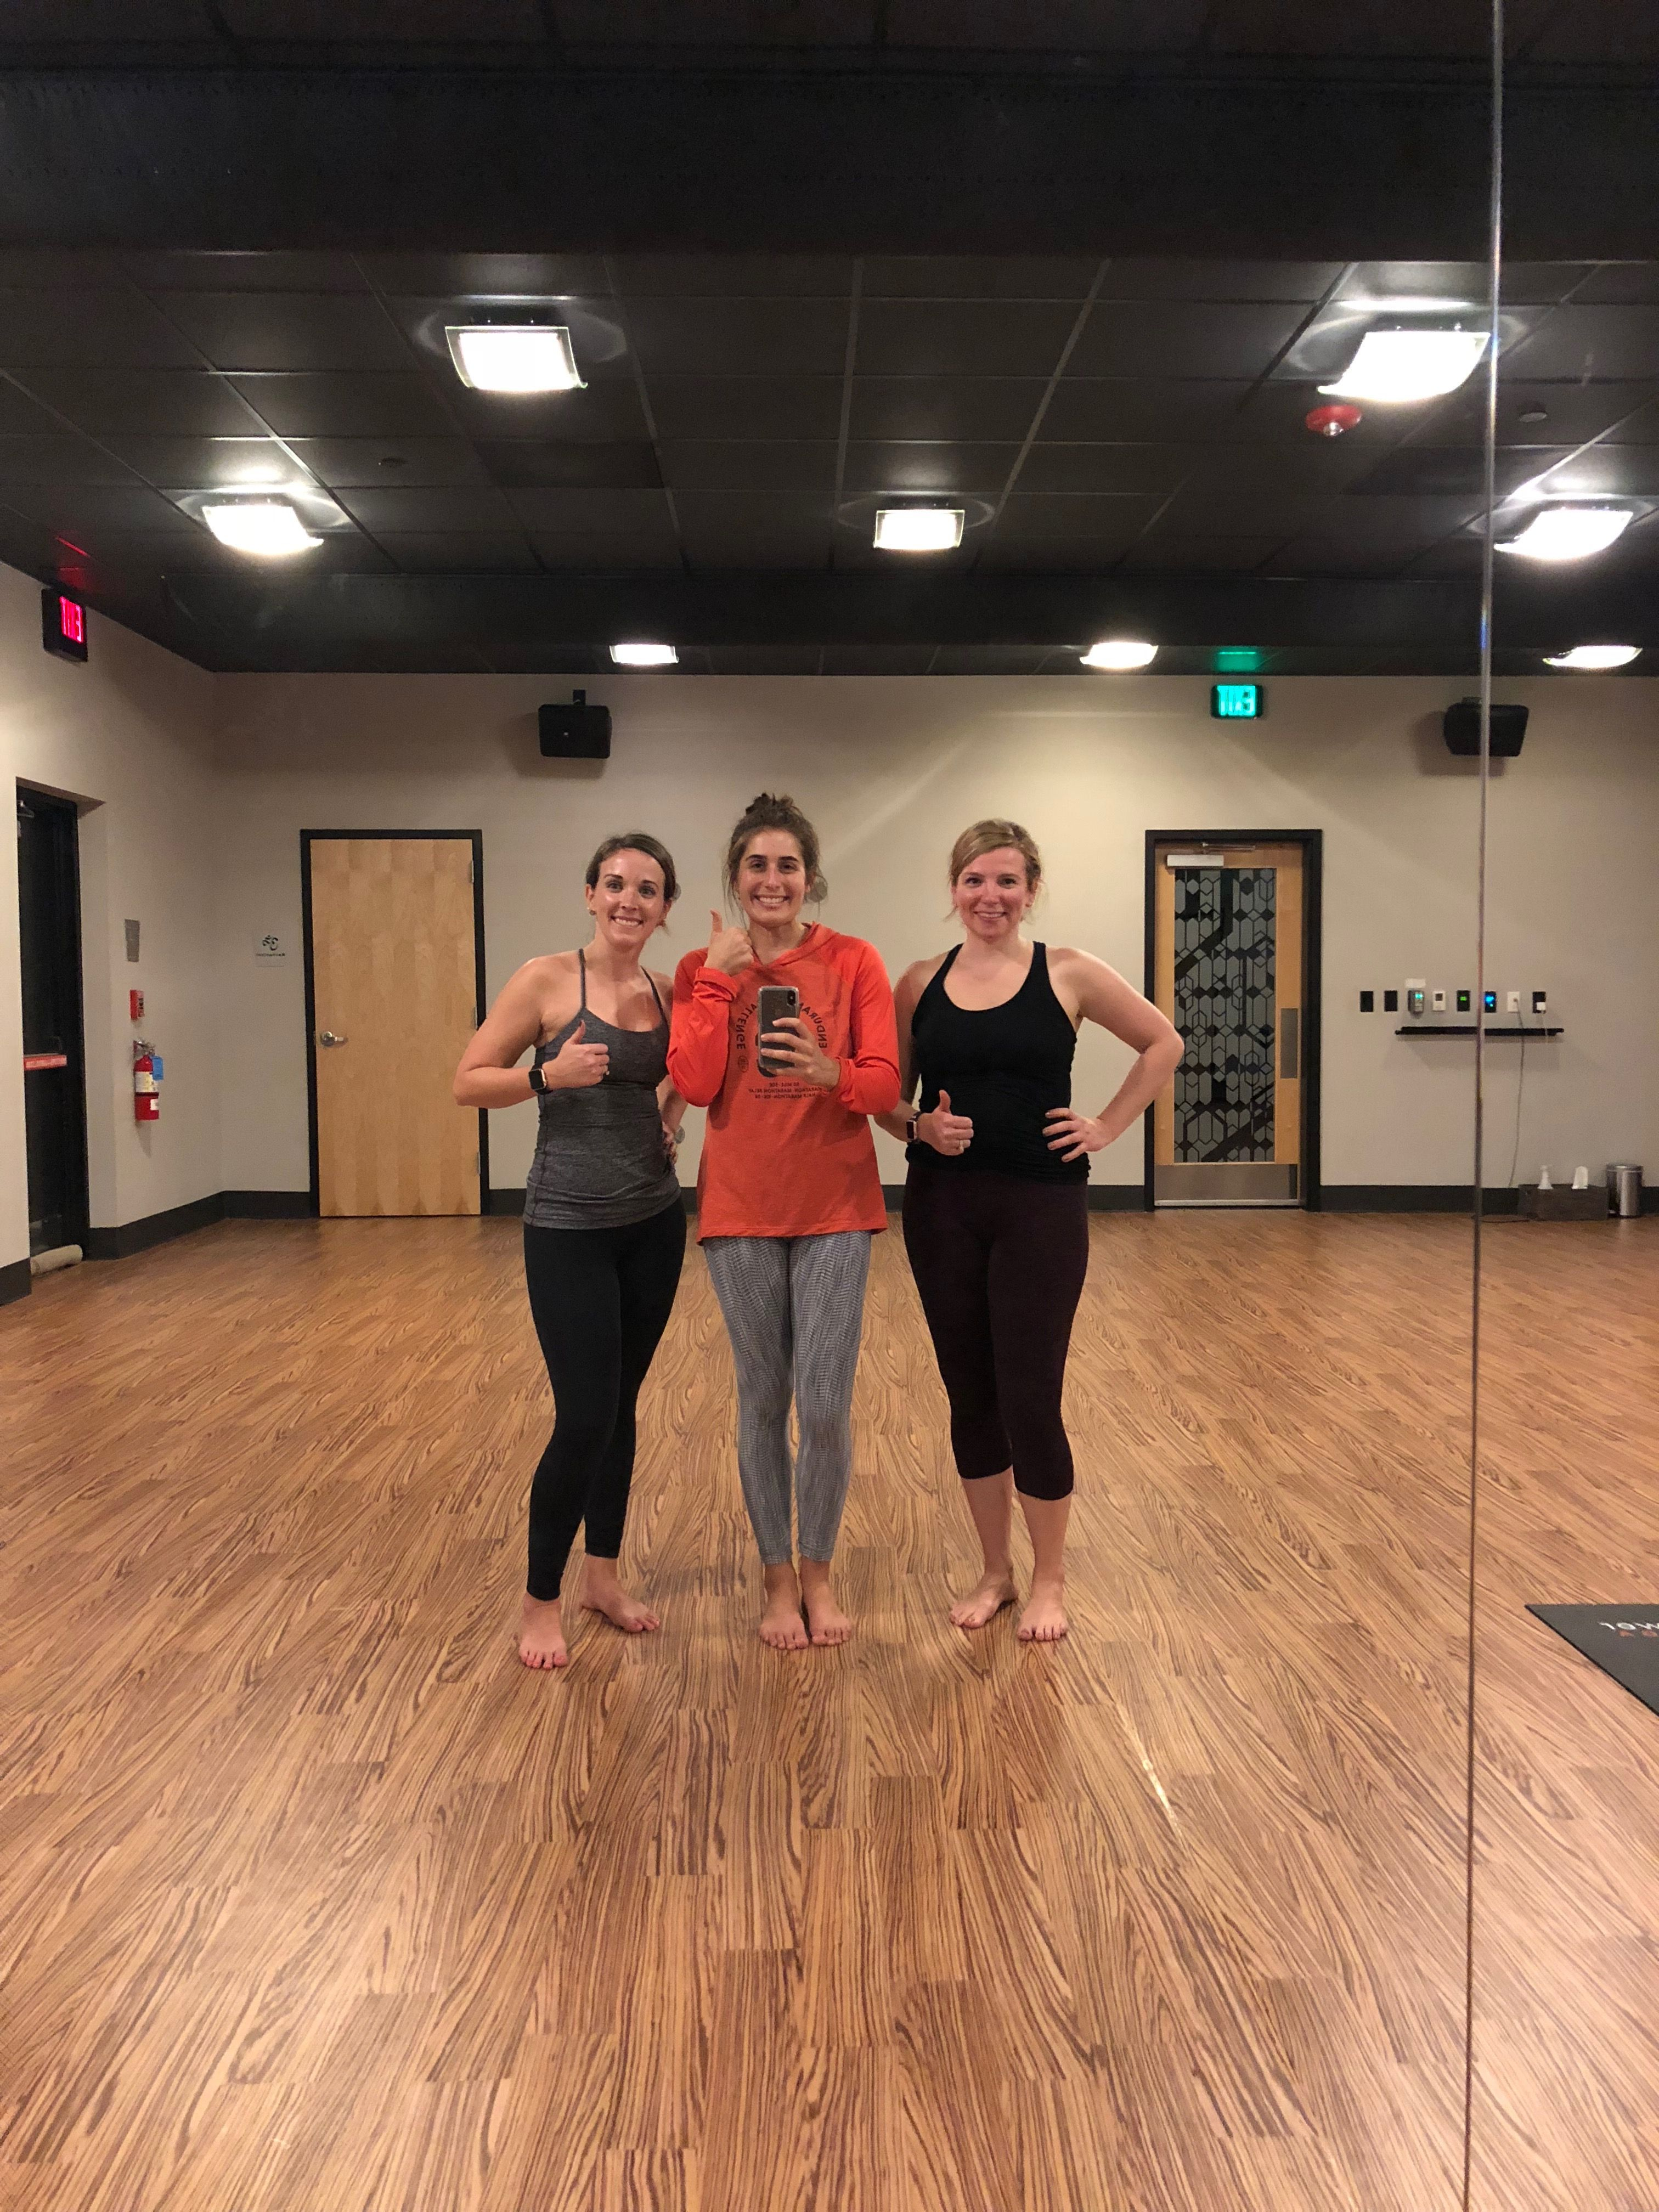 Name Core Power Yoga Location North Wales Pa Exercise Type Core Power Yoga 1 C1 Place Studio Day Of The Week Corepower Yoga Yoga Locations Fitness Class